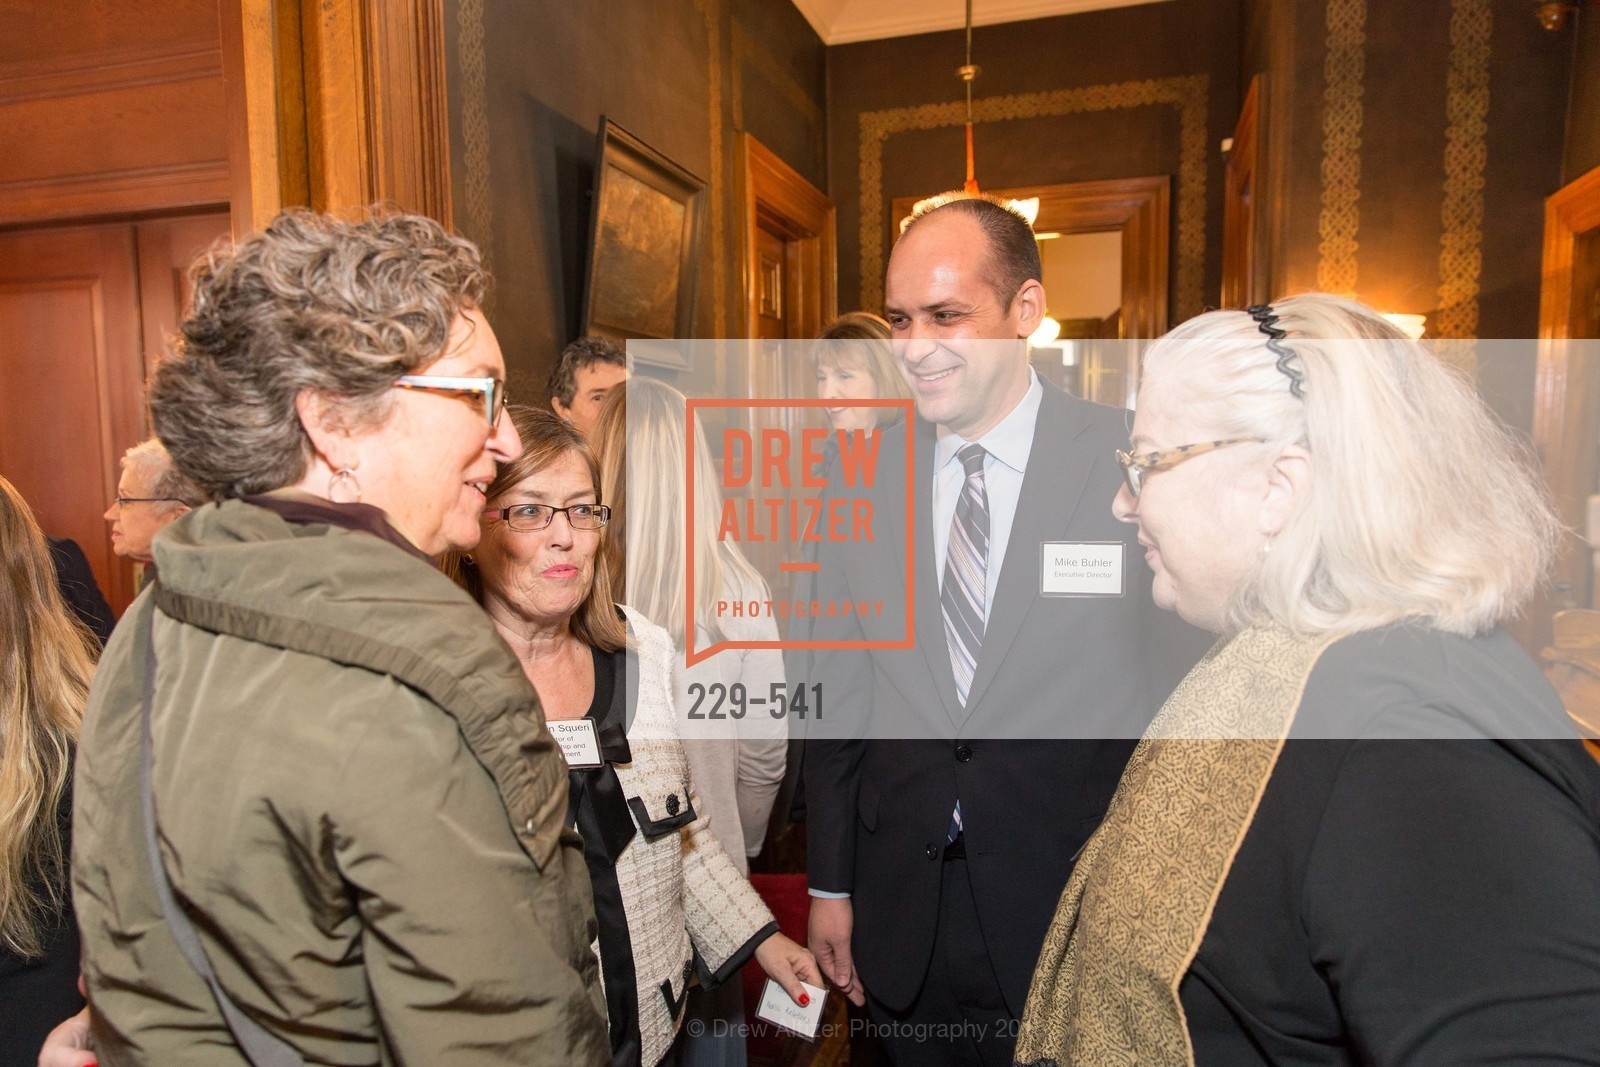 Debbie Cooper, Carolyn Squeri, Mike Buhler, Ceremony Inaugurating the Campaign for San Francisco Heritage & Haas-Lilienthal House, Haas-Lilienthal House. 2007 Franklin Street, November 18th, 2015,Drew Altizer, Drew Altizer Photography, full-service agency, private events, San Francisco photographer, photographer california